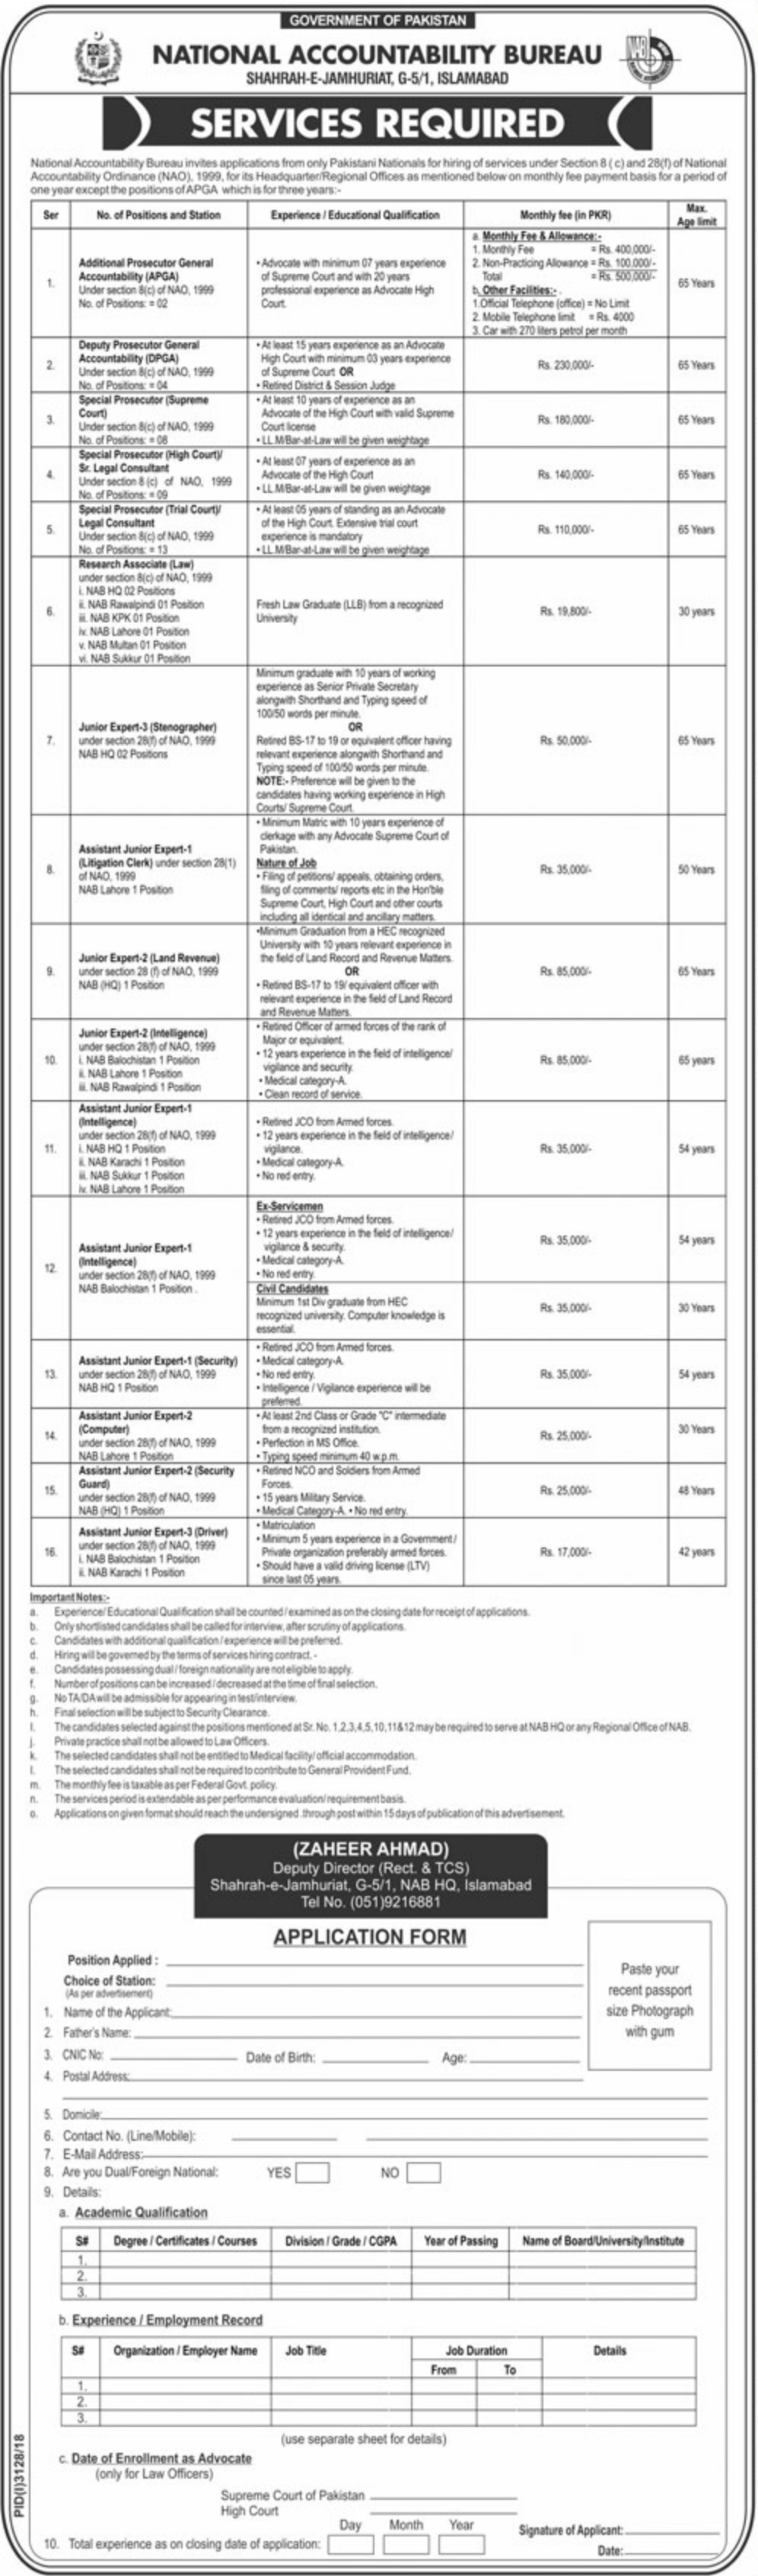 NAB Islamabad Jobs 2019 Government of Pakistan